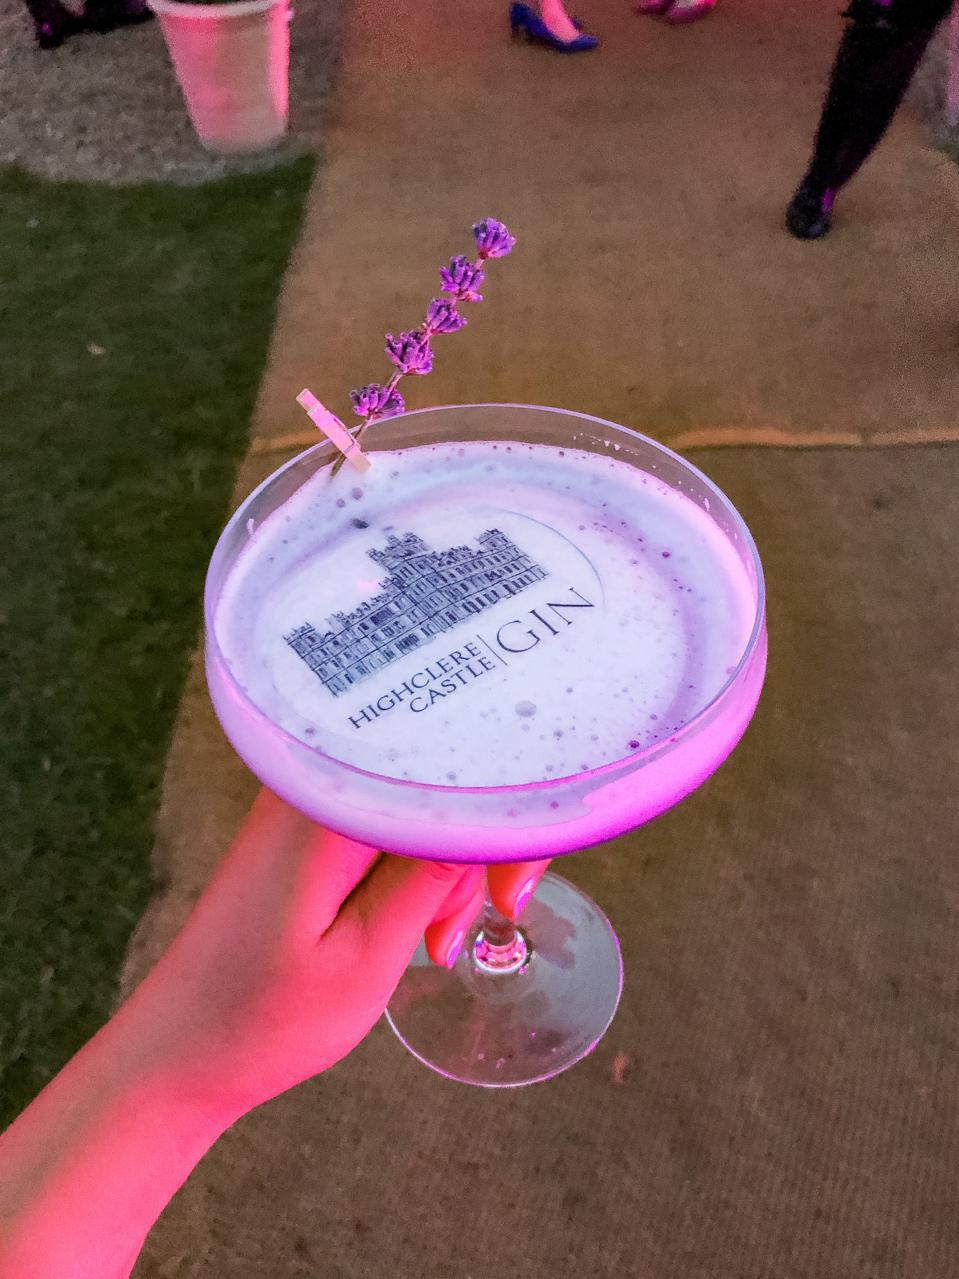 HIGHCLERE CASTLE - A cocktail served at castle on the weekend of the Highclere Castle Gin launch